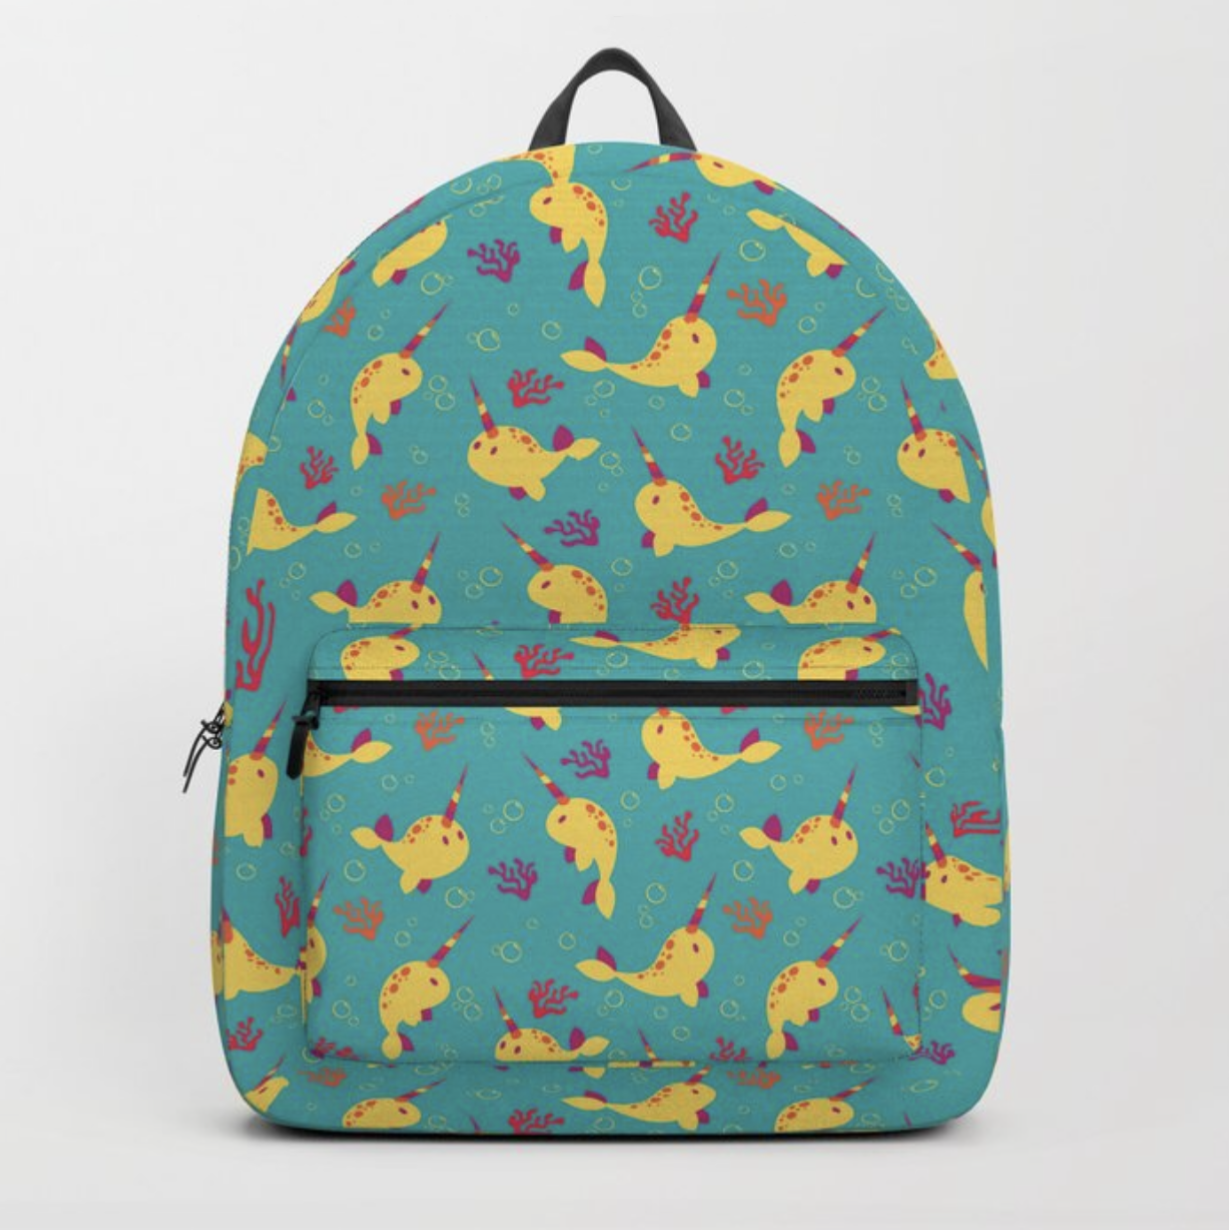 To the Window to the Narwhal backpack from Society6